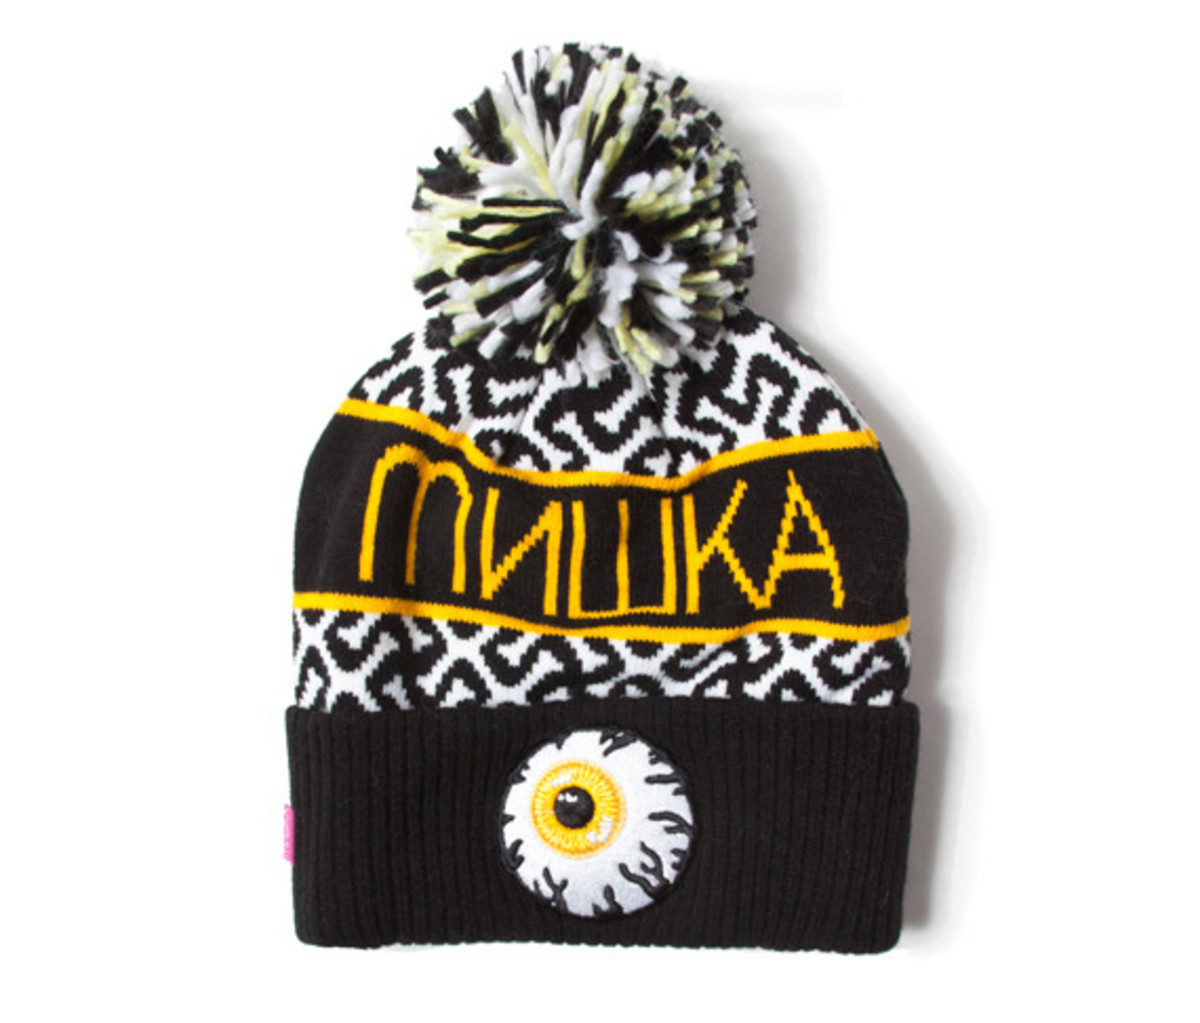 Mishka 10th Anniversary Decade of Destruction Capsule Collection 10